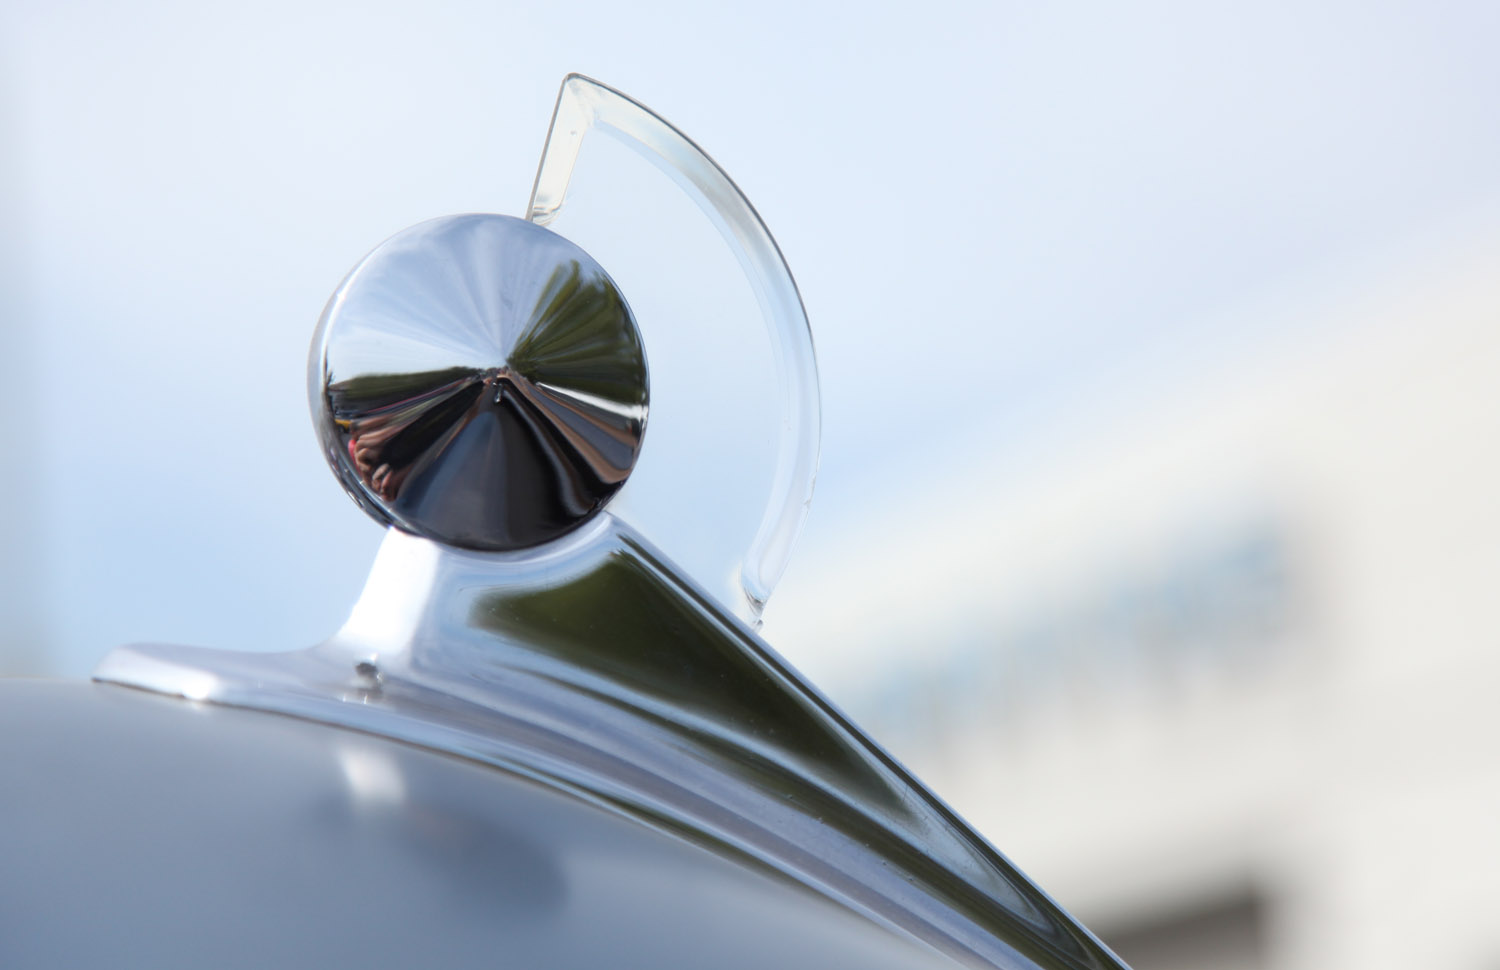 Falcon hood ornament - Ford Related Hood Ornaments